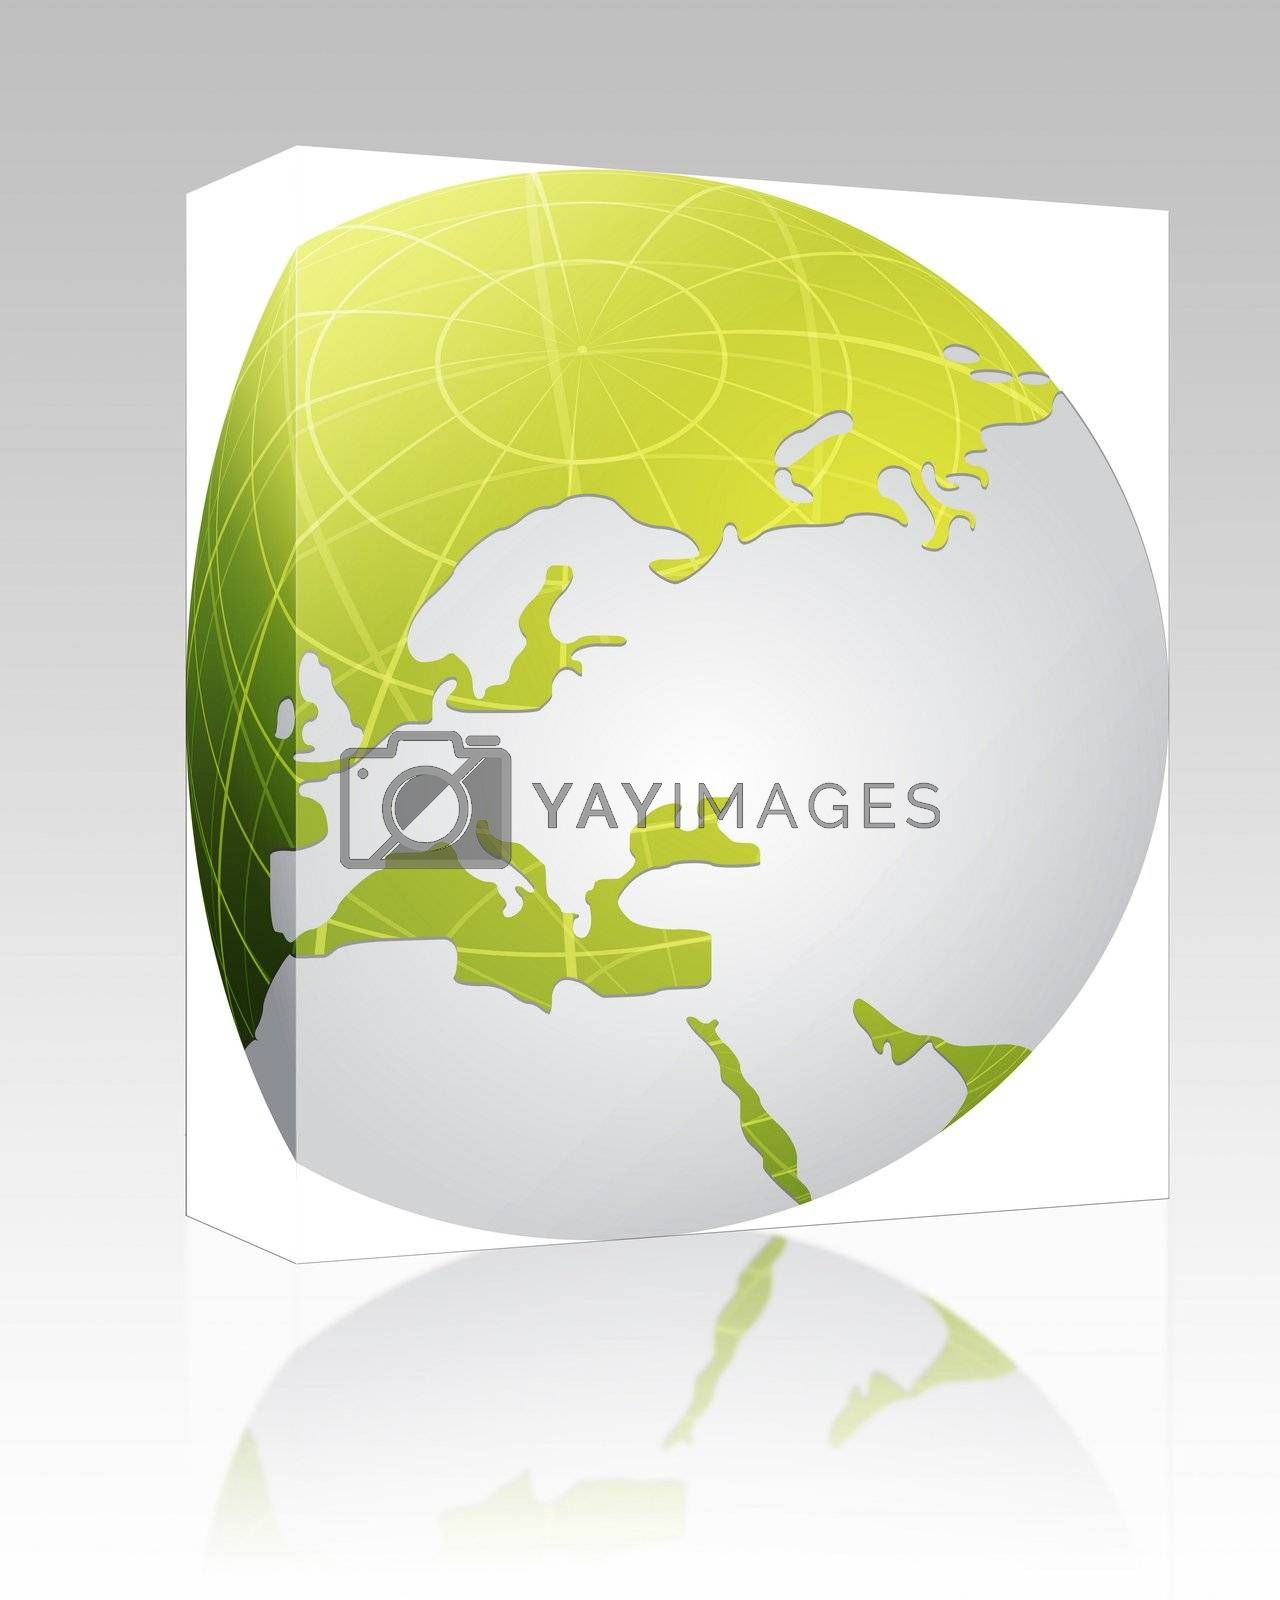 Software package box Globe map illustration of Europe continent countries